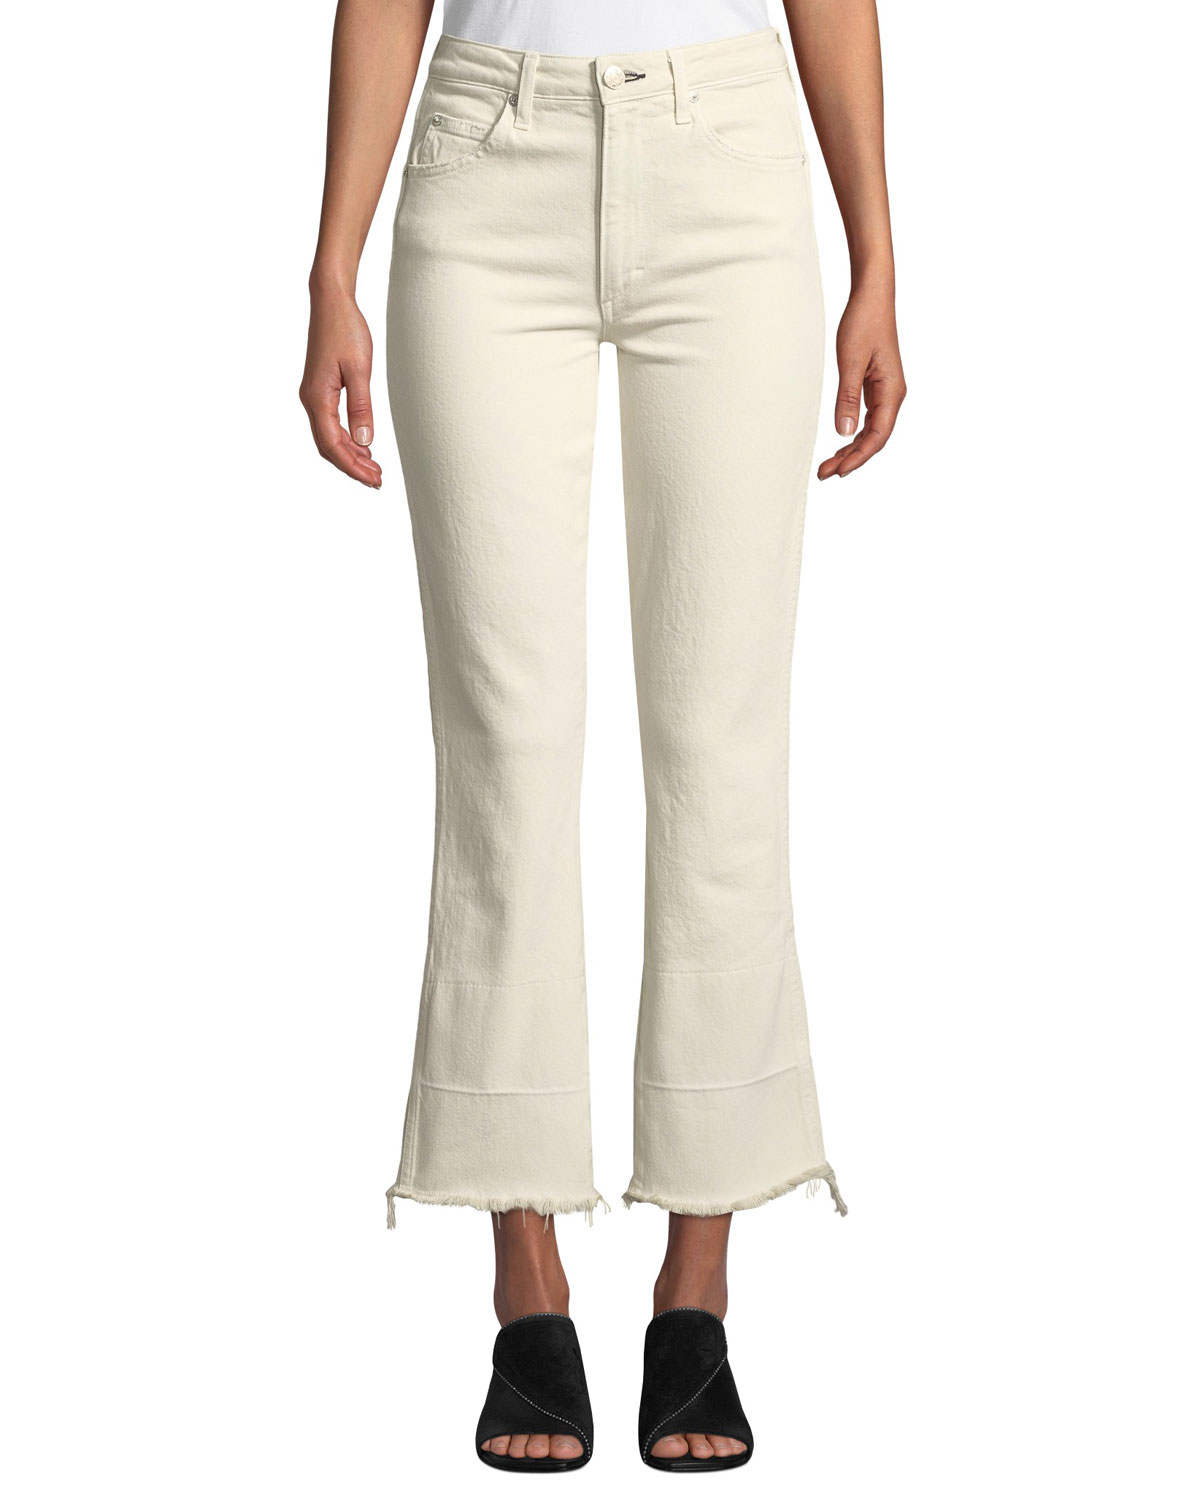 AMO DENIM Bella High-Rise Flare-Leg Jeans With Released Hem in Vintage White